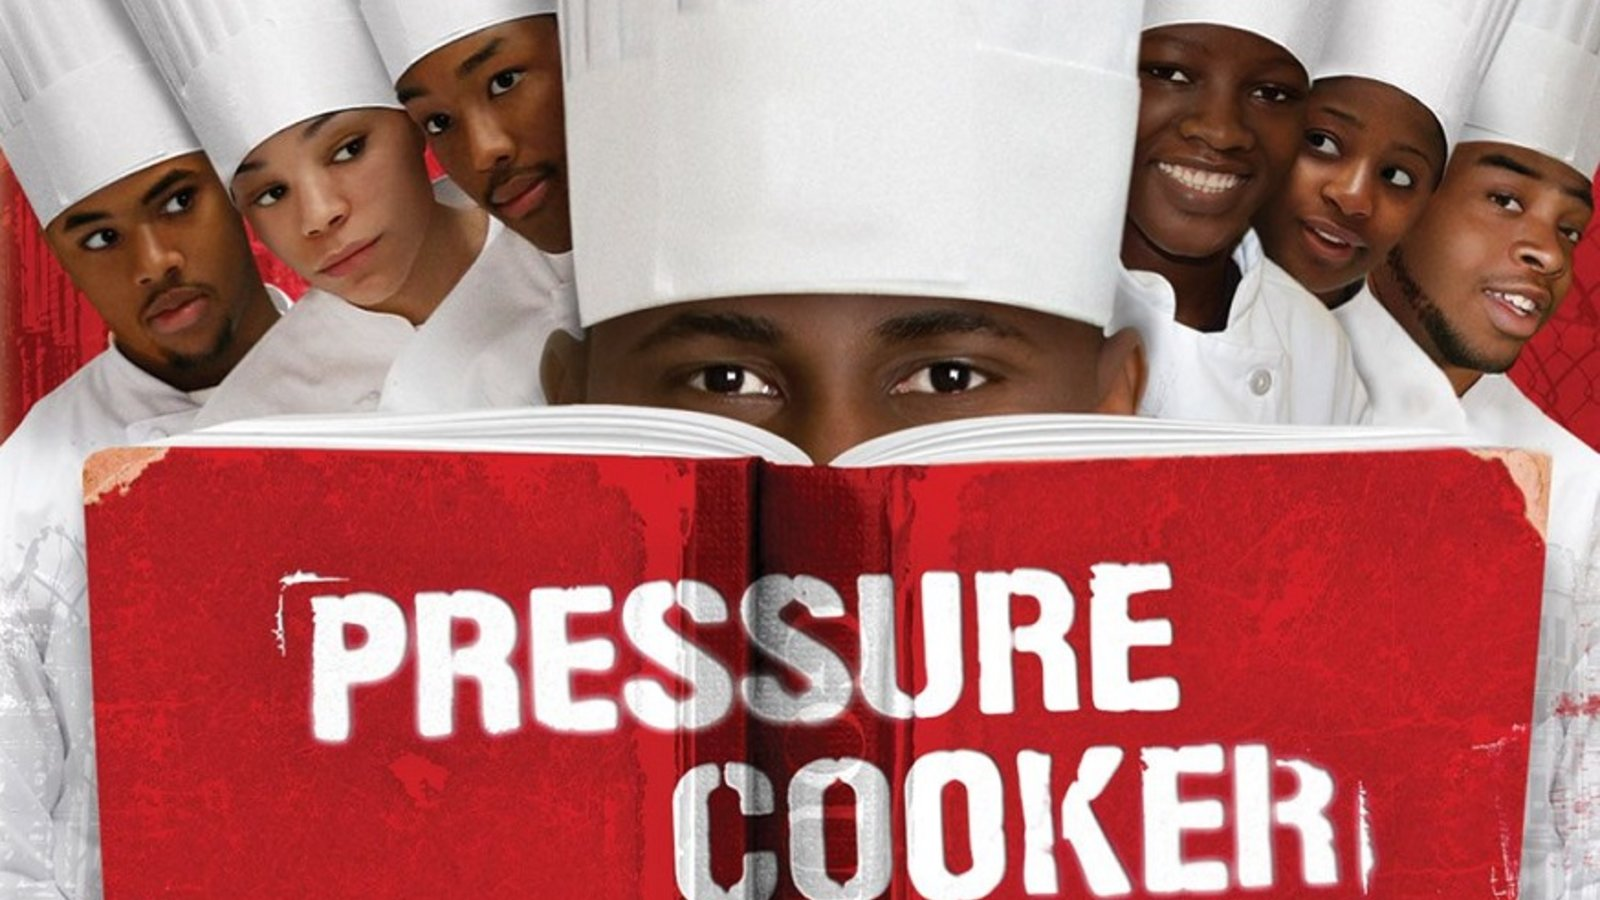 Pressure Cooker - Culinary Arts Bootcamp